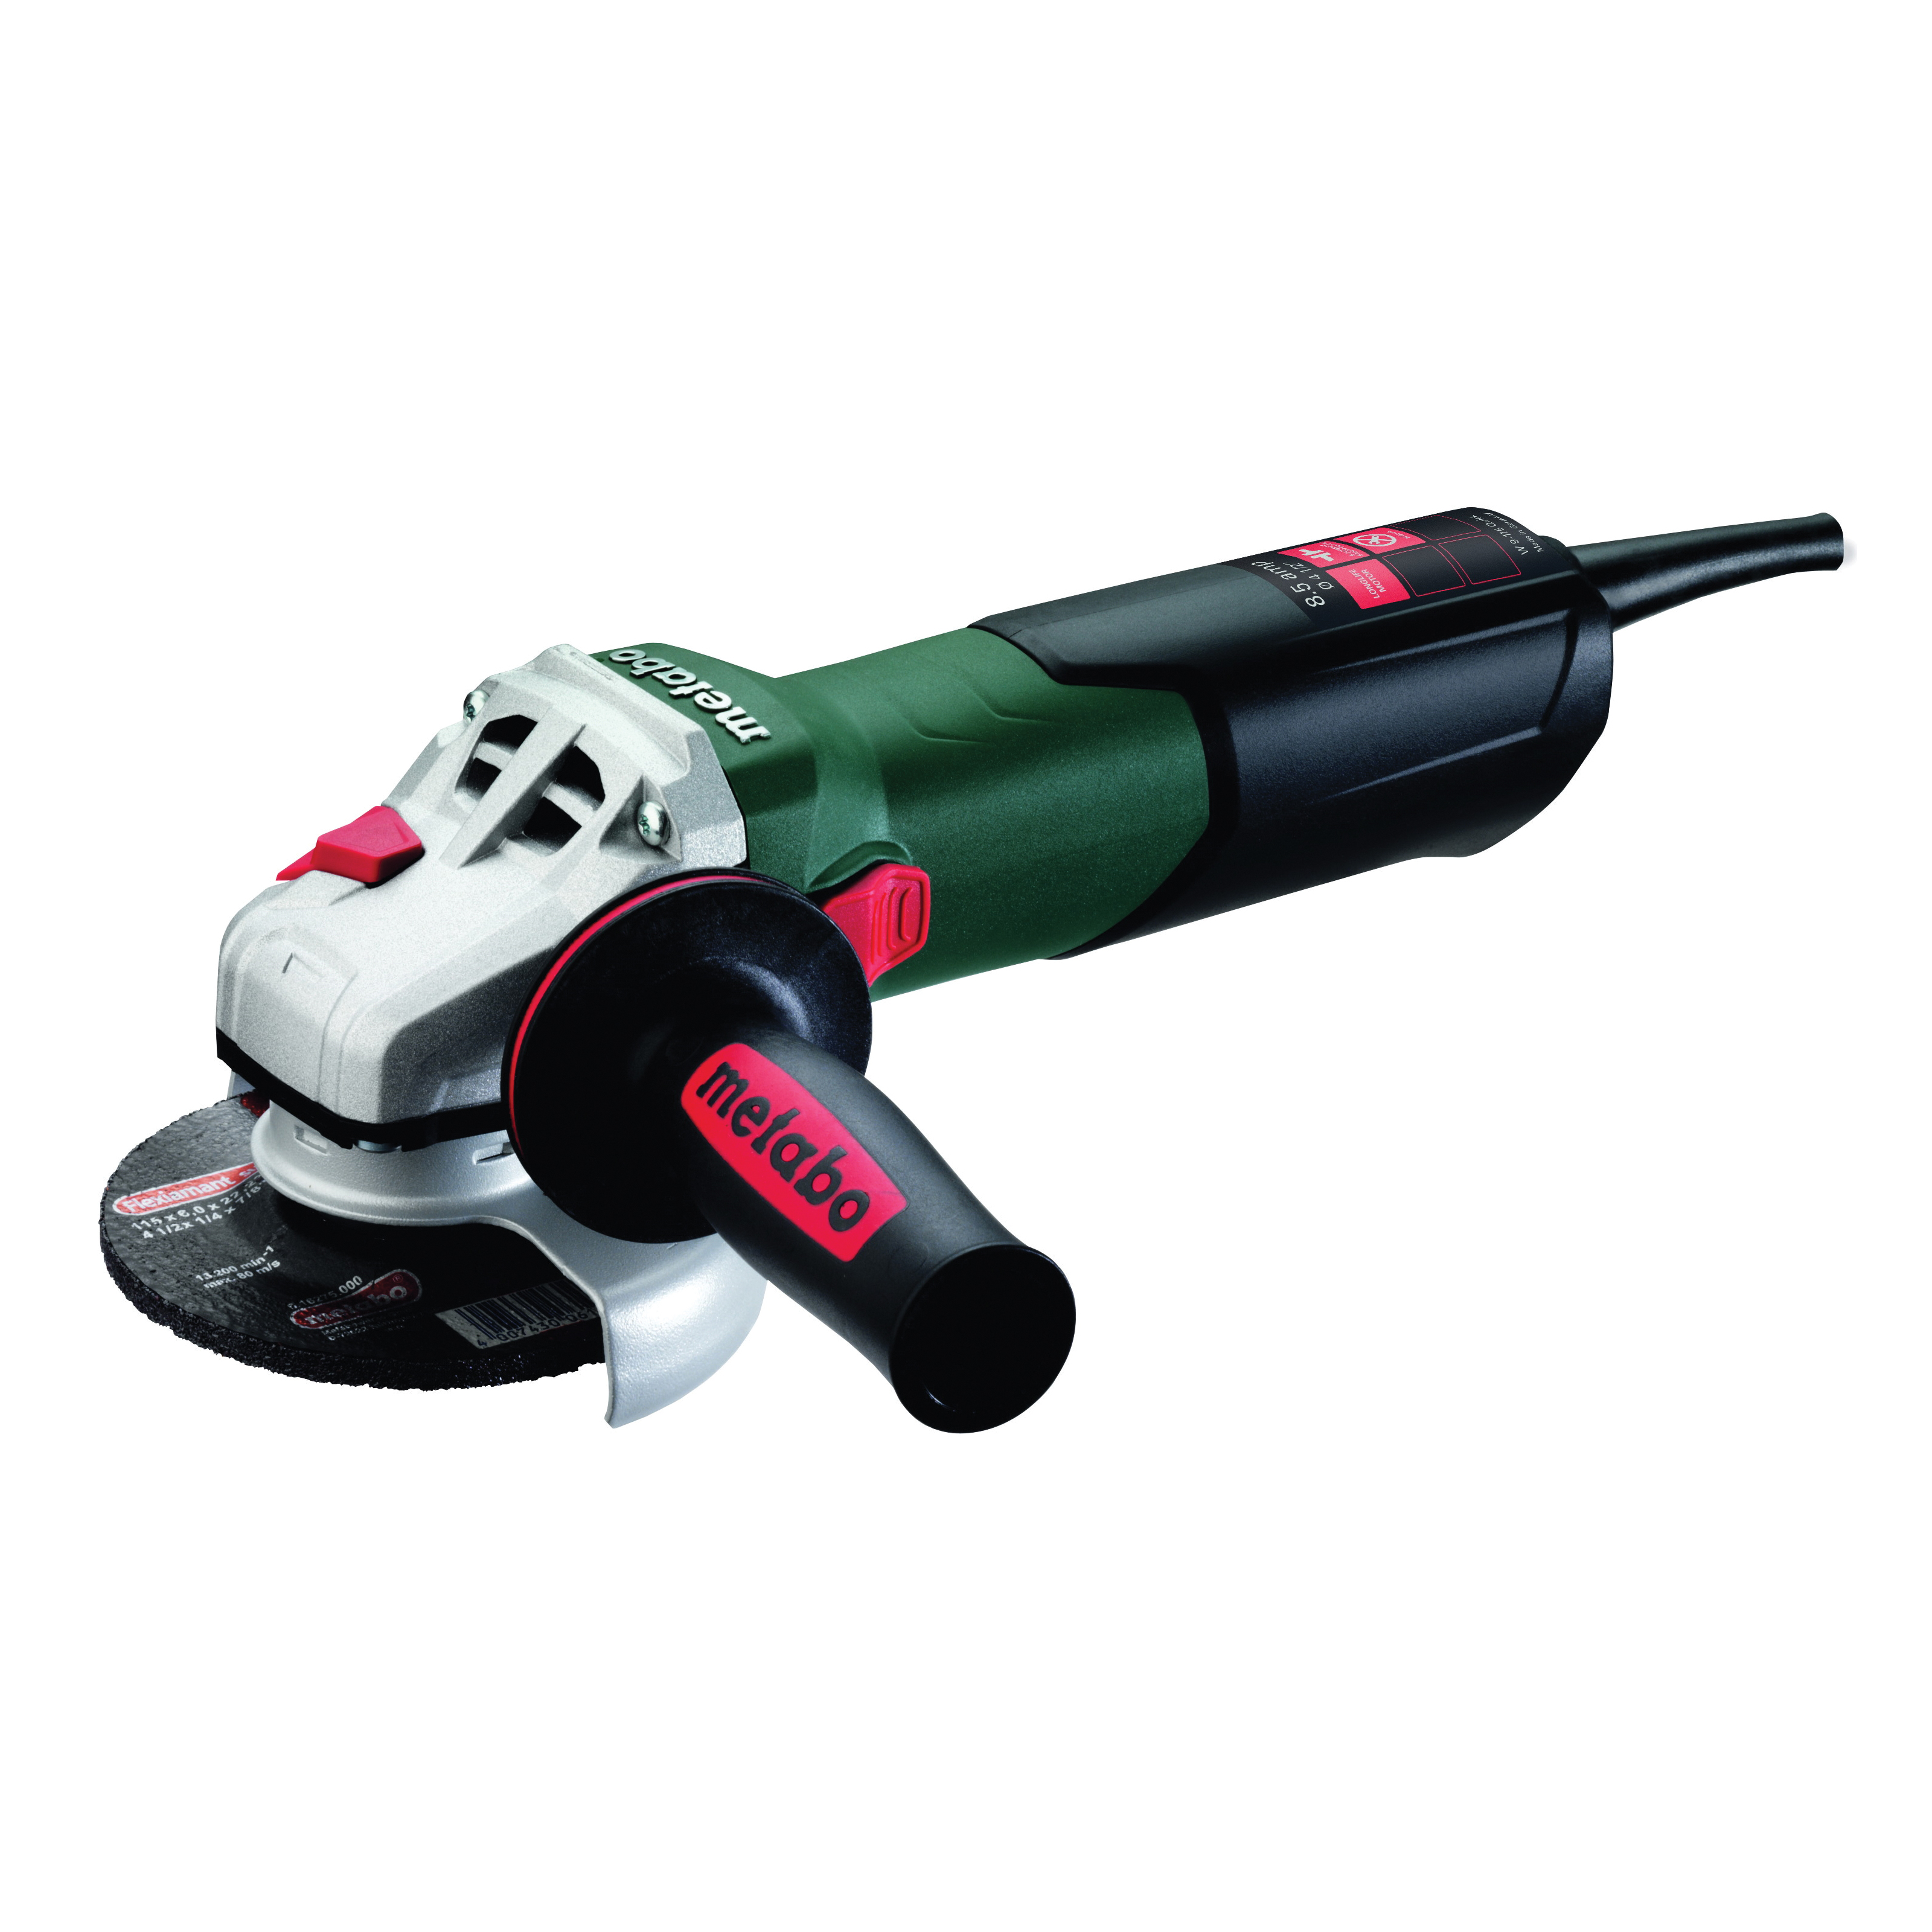 metabo® 600371420 Electric Angle Grinder, 4-1/2 in Wheel, 5/8-11 UNC, 110 to 120 V, Tool Only